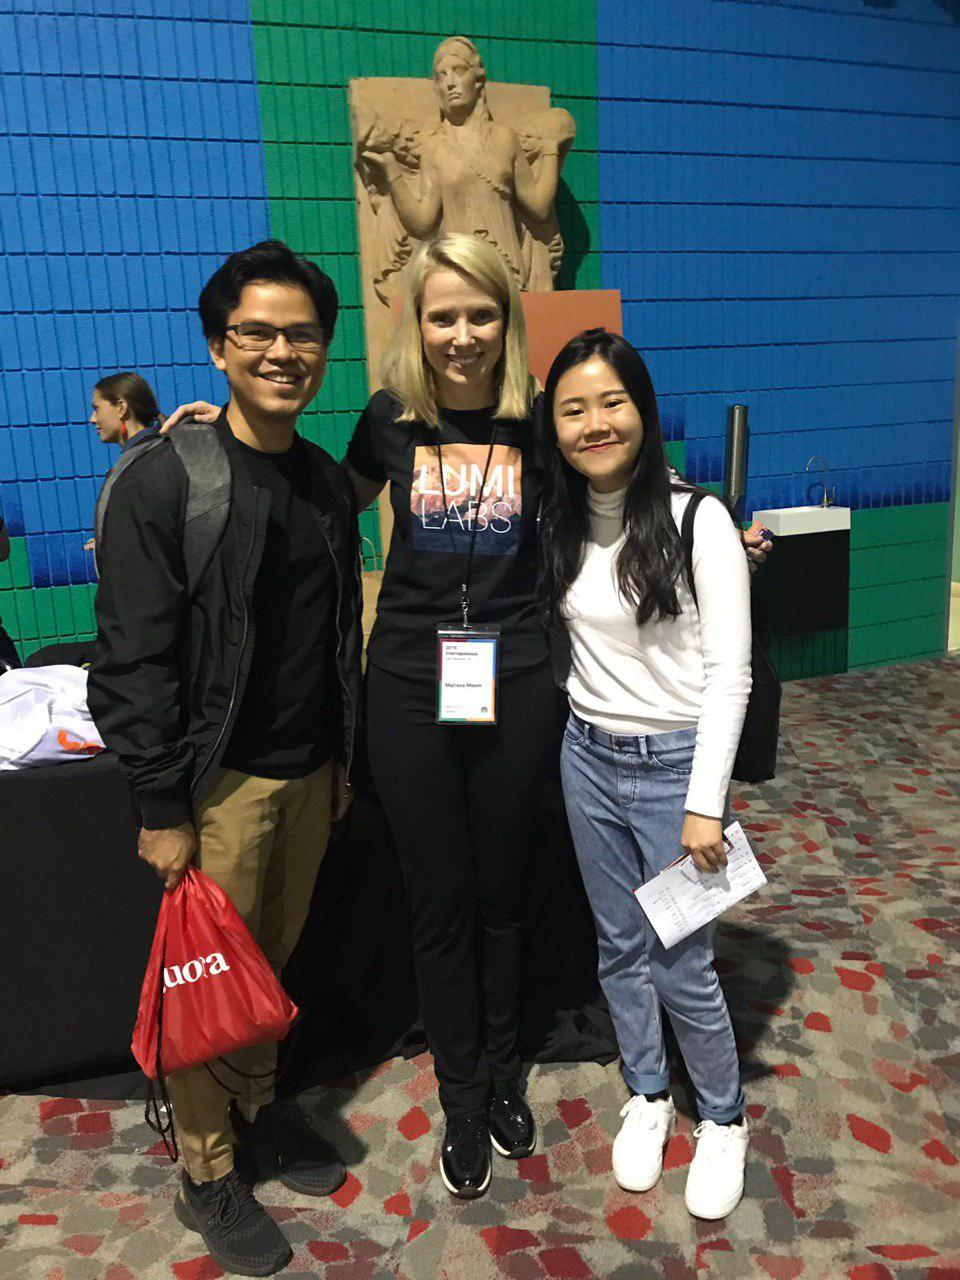 Photo with Marissa Mayer at Internapalooza 2019